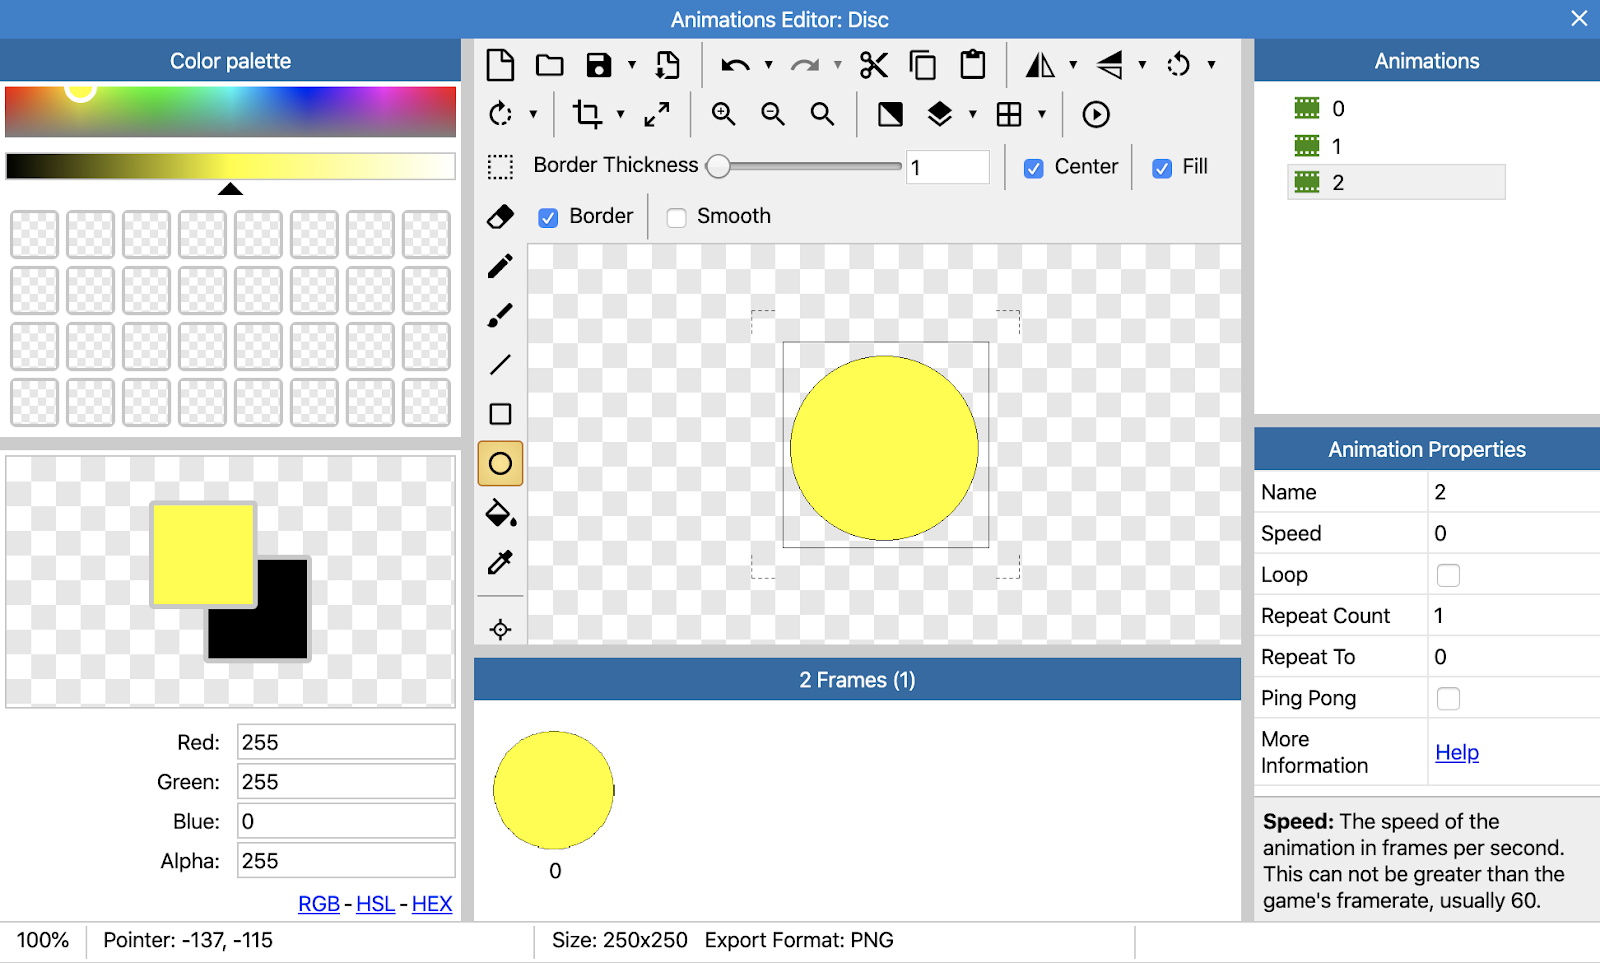 Three animations for our disc: white, red and yellow.